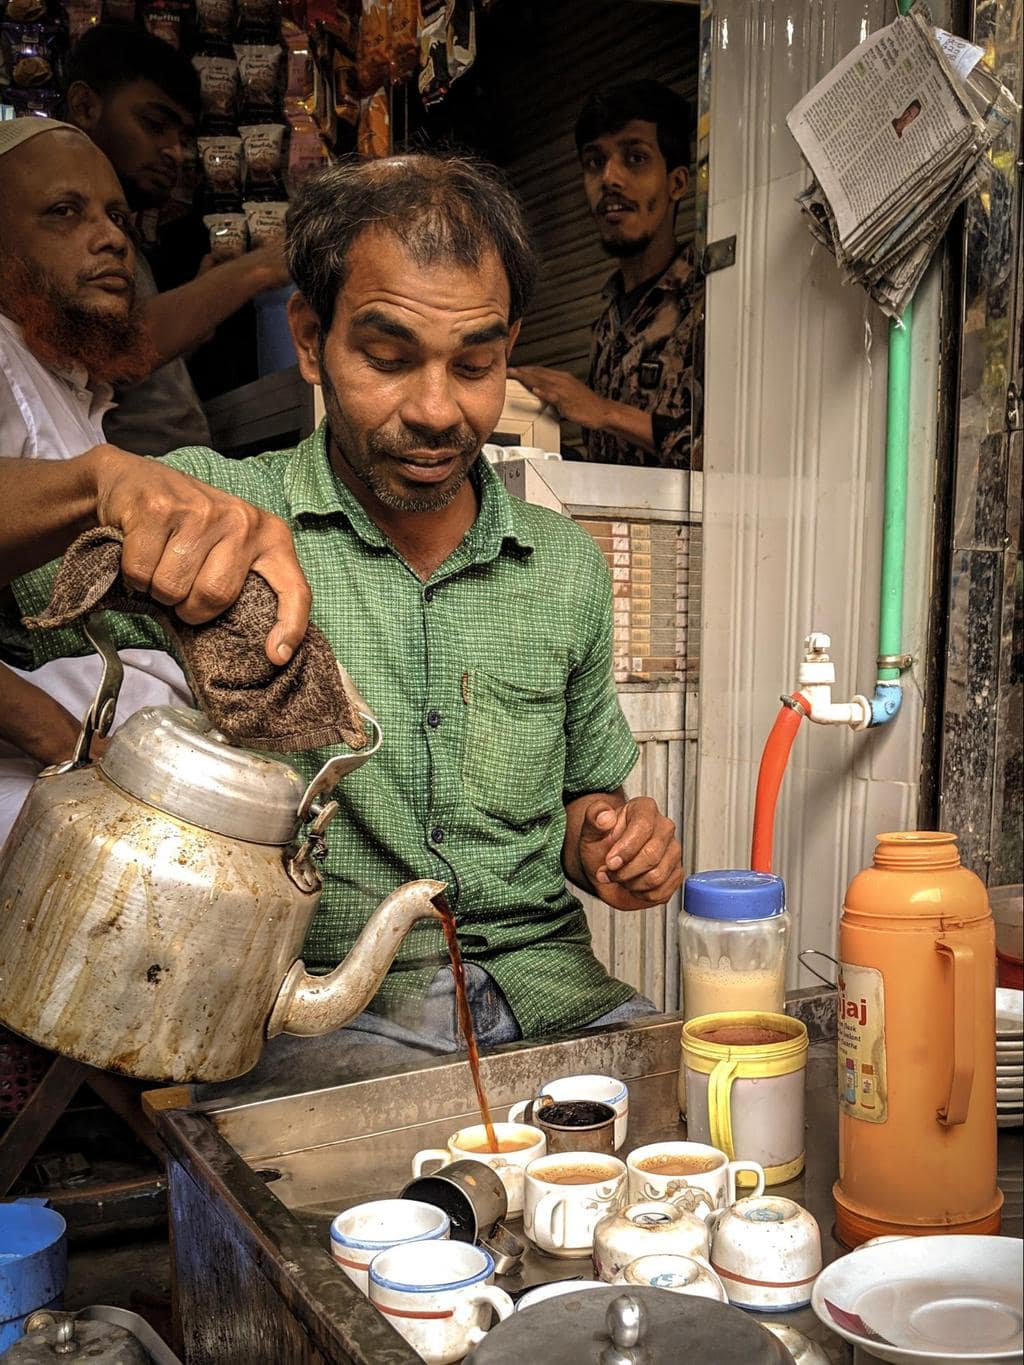 Cha is sold in street stalls all throughout Dhaka